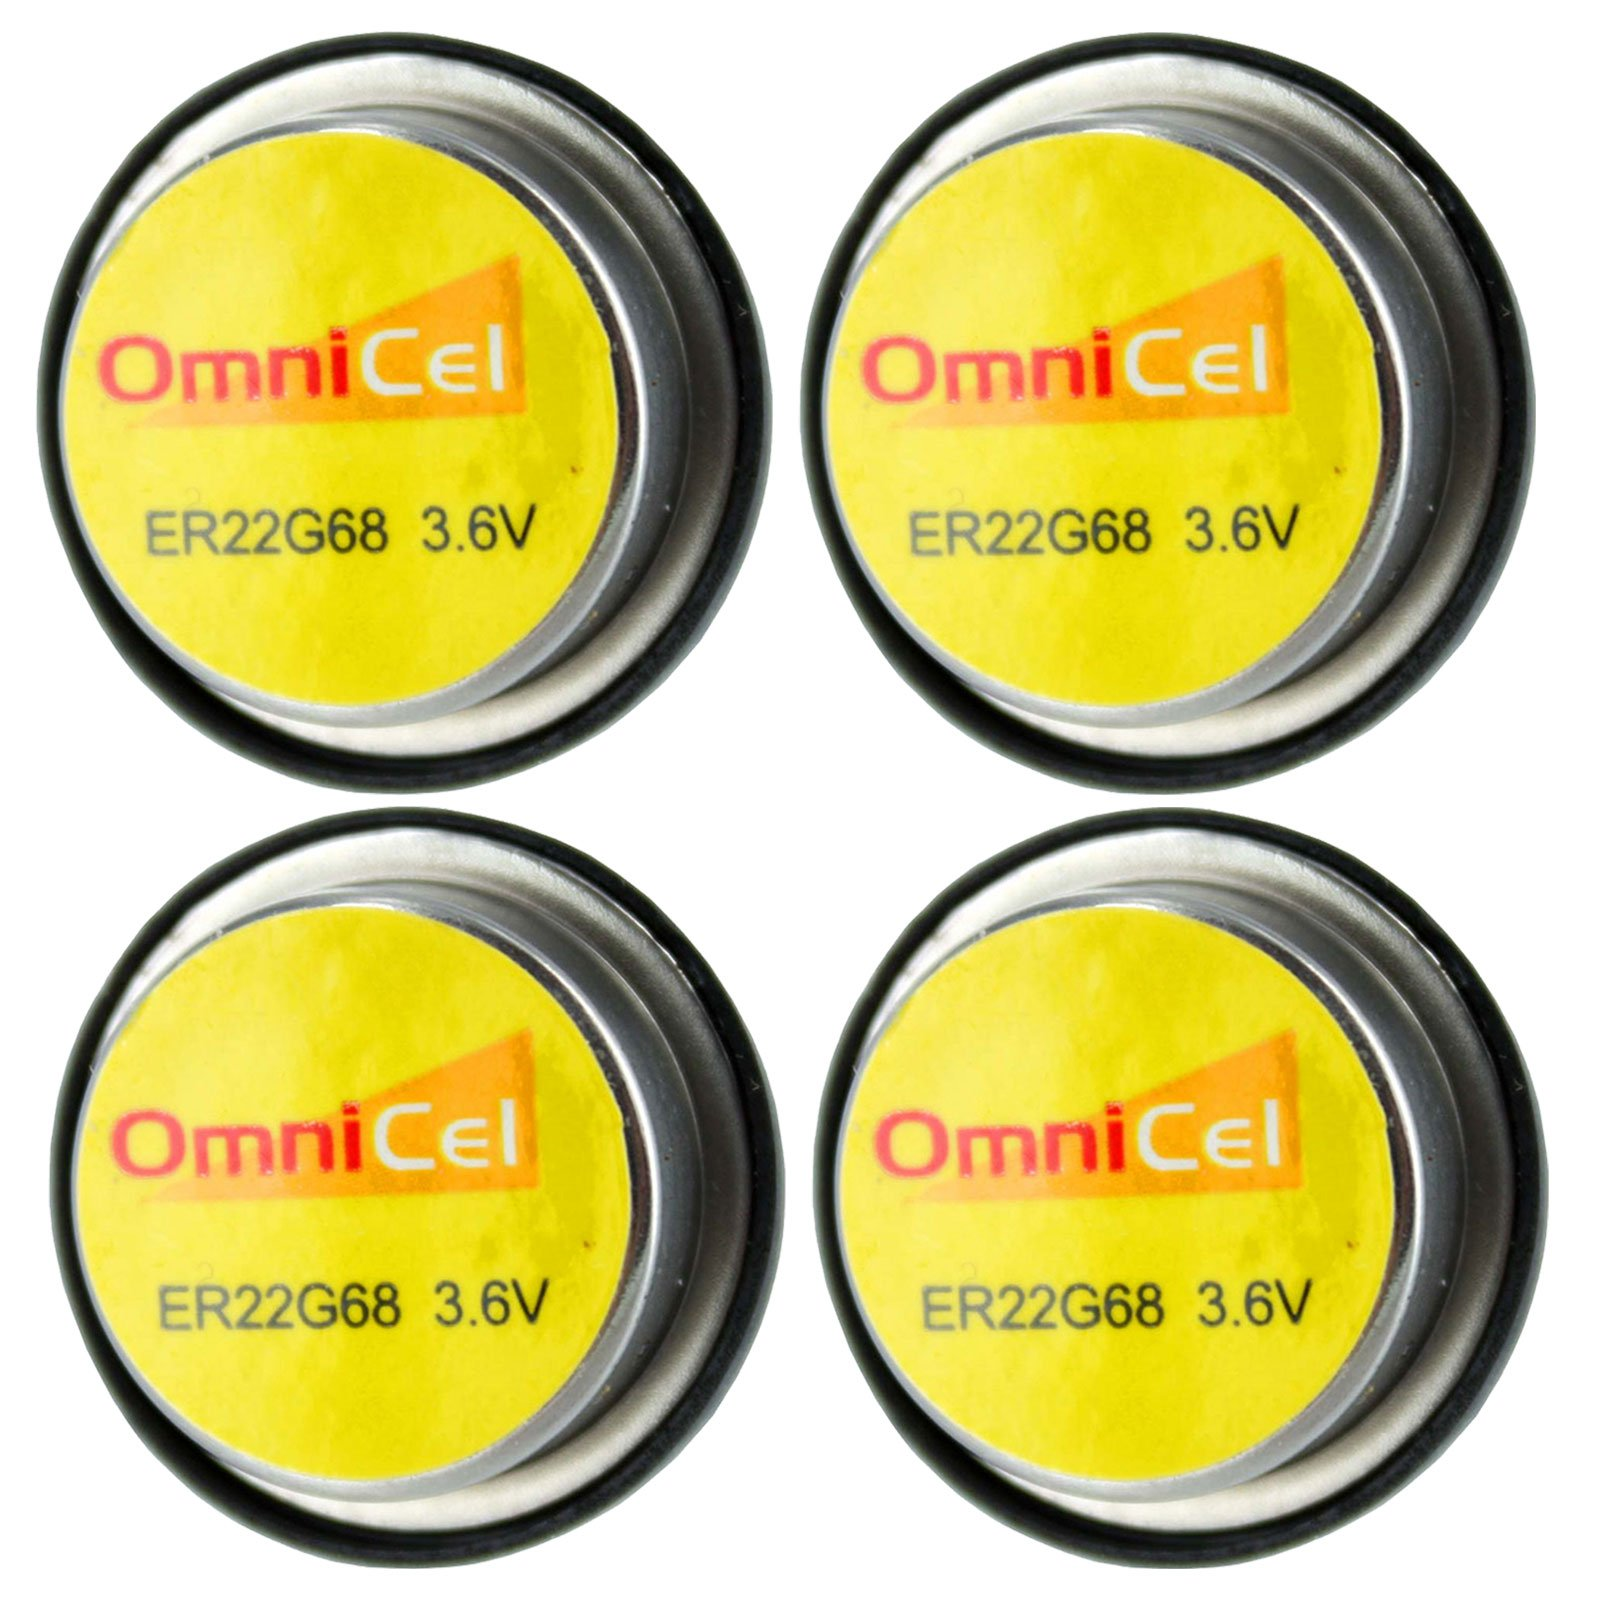 4x OmniCel ER22G68 3.6V 0.4Ah Bel Cell Waffer Lithium High Energy Battery For Smoke Alarms, Carbon Monoxide Detectors, Intrusion Sensors, Invisible Fencing, Emergency Backup, Data Collection by Exell Battery